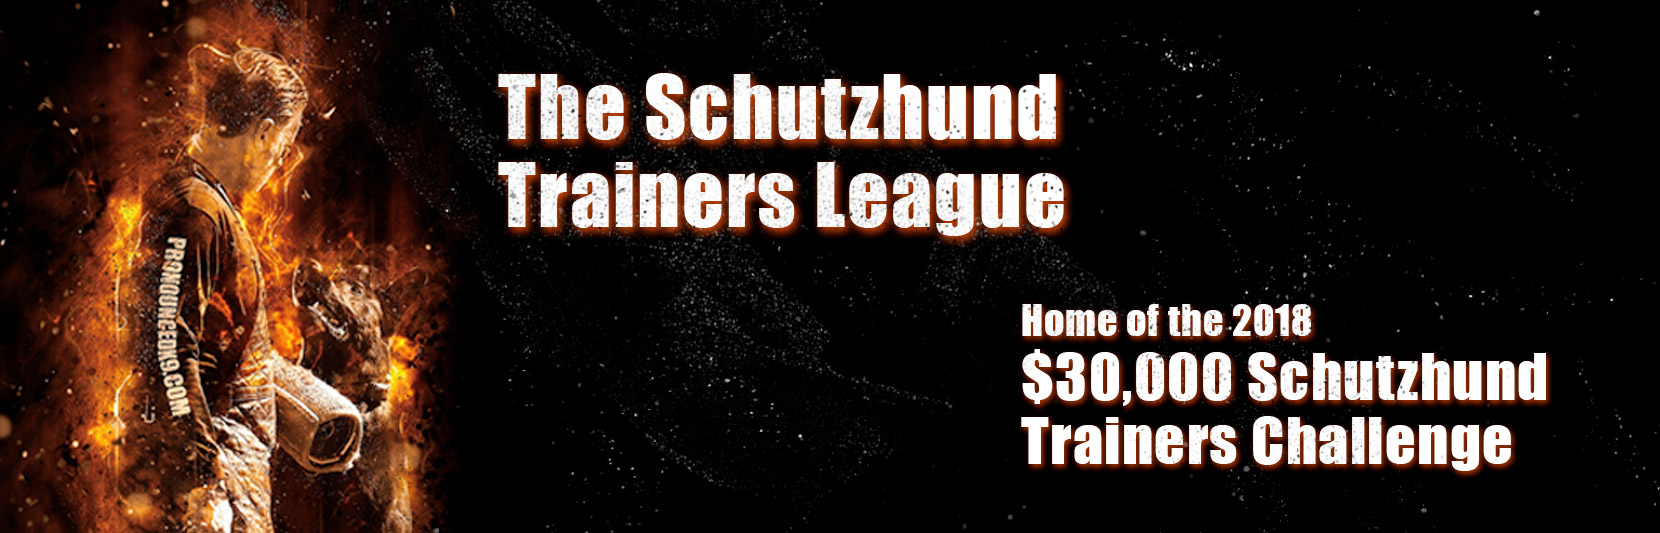 The PronouncedK9 Schutzhund Trainers League